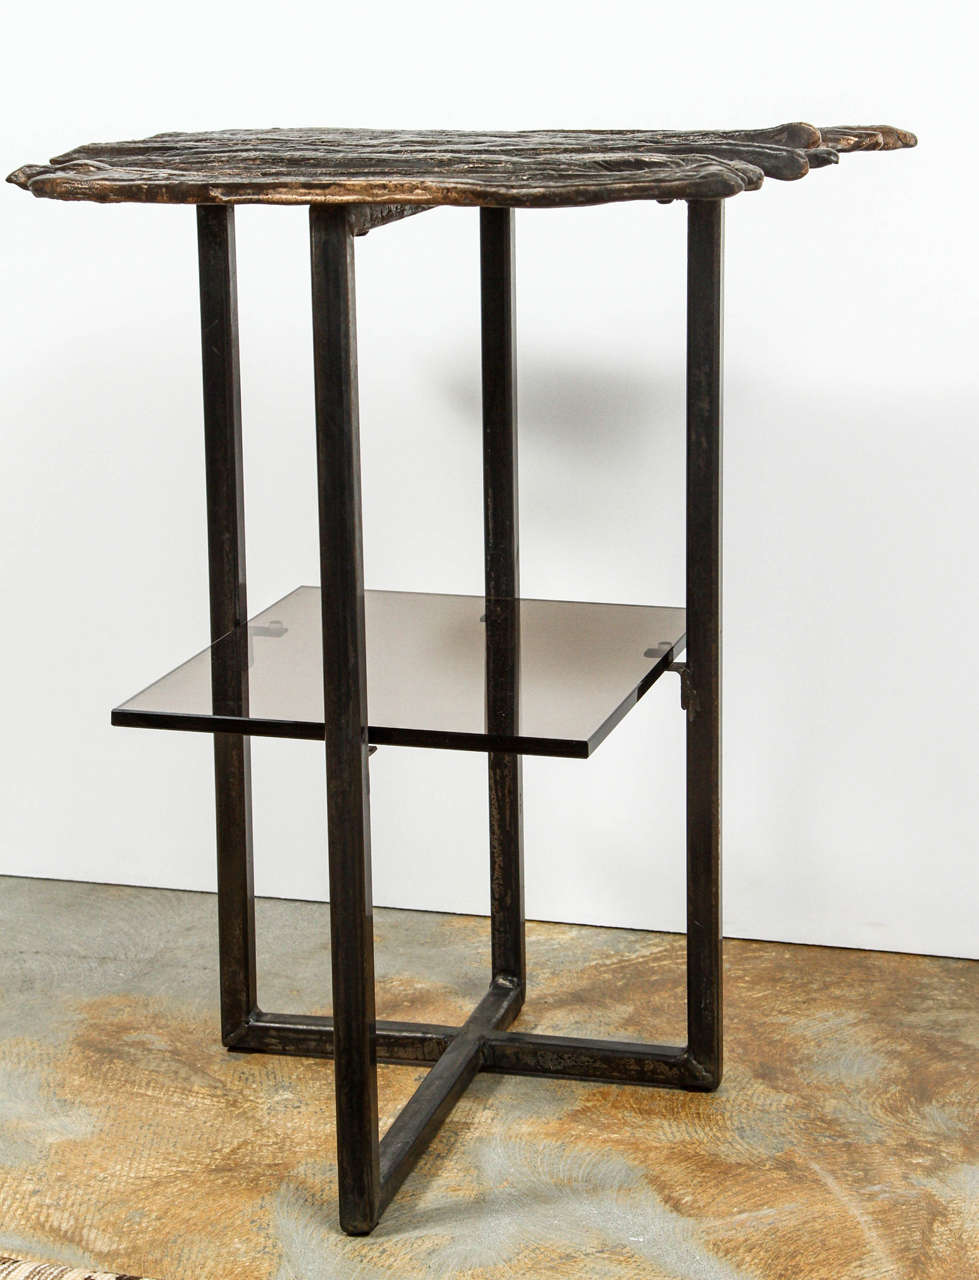 Modern, organic modern Paul Marra cast bronze Pod Table. Cast bronze and steel with bronze patina and with bronze tinted glass shelf. Two currently in stock; price is per table.